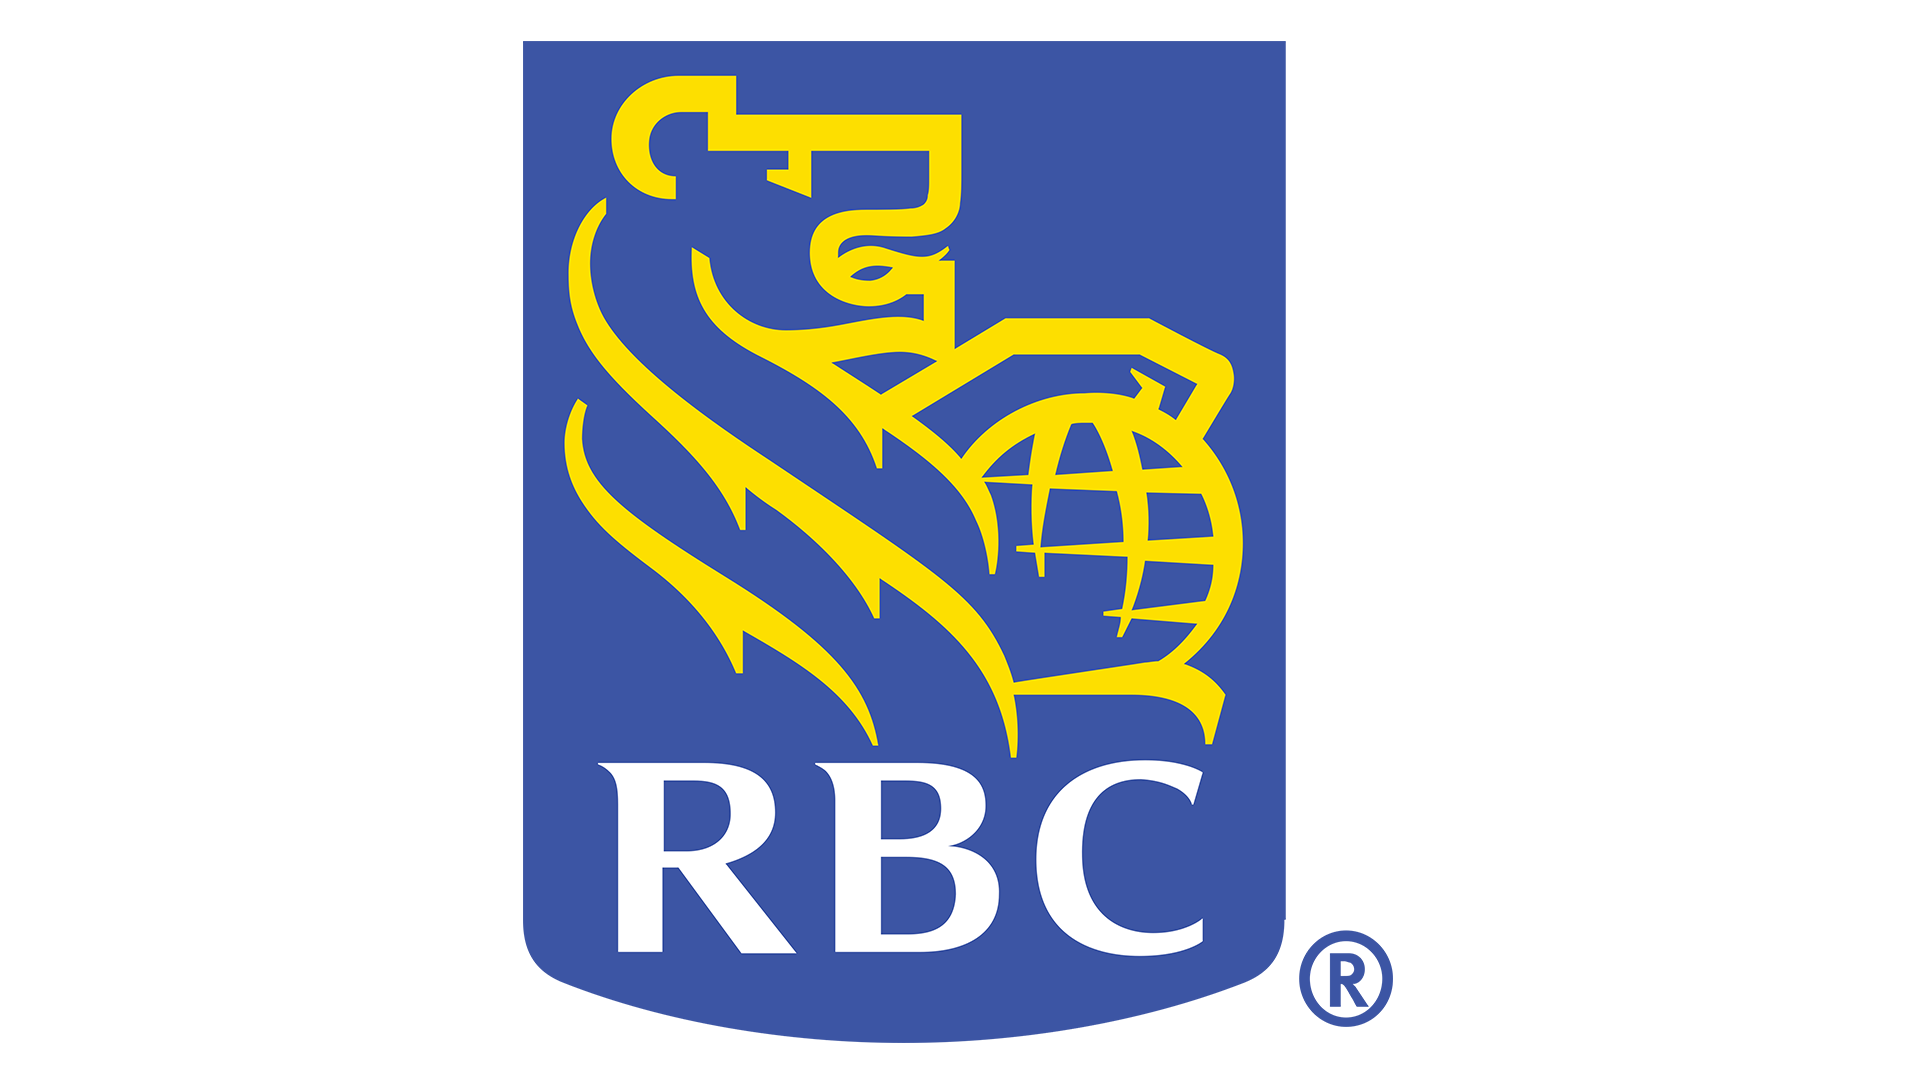 RBC - SUSAN WILLCOCK